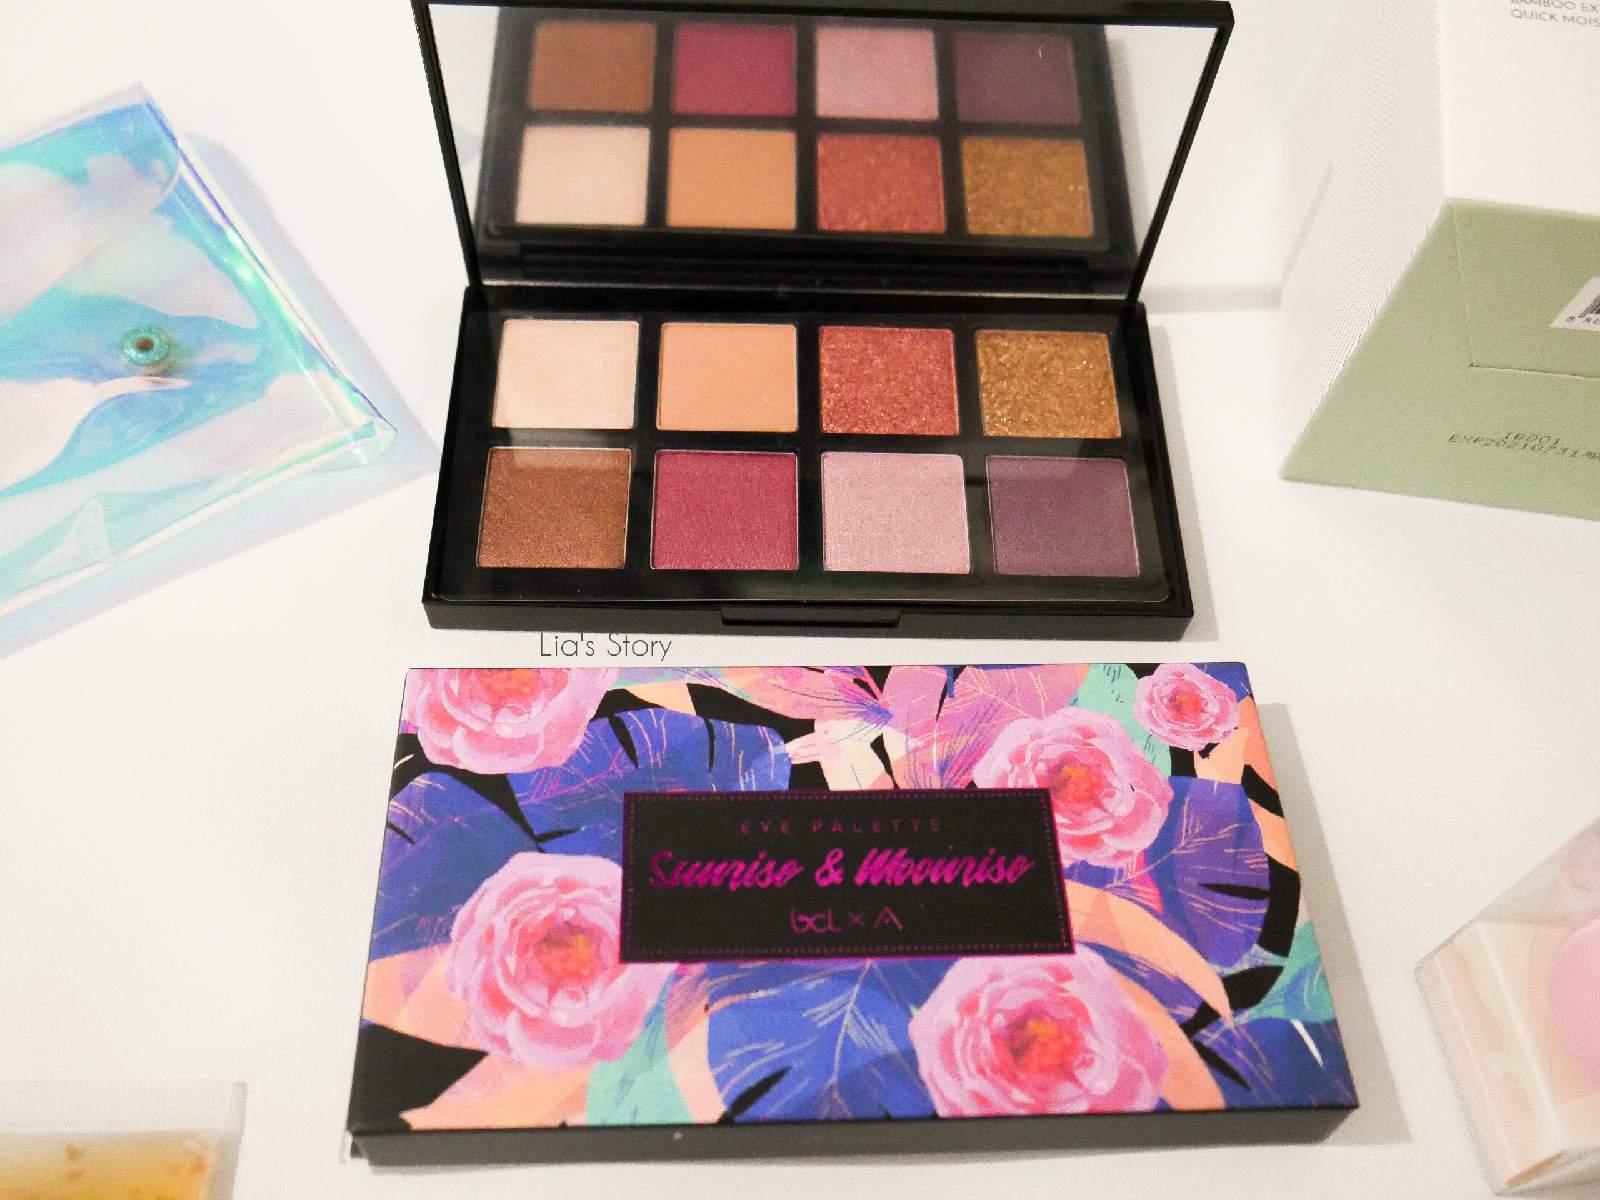 Review-Eye-palette-sunrise-moonrise-bcl-x-althea